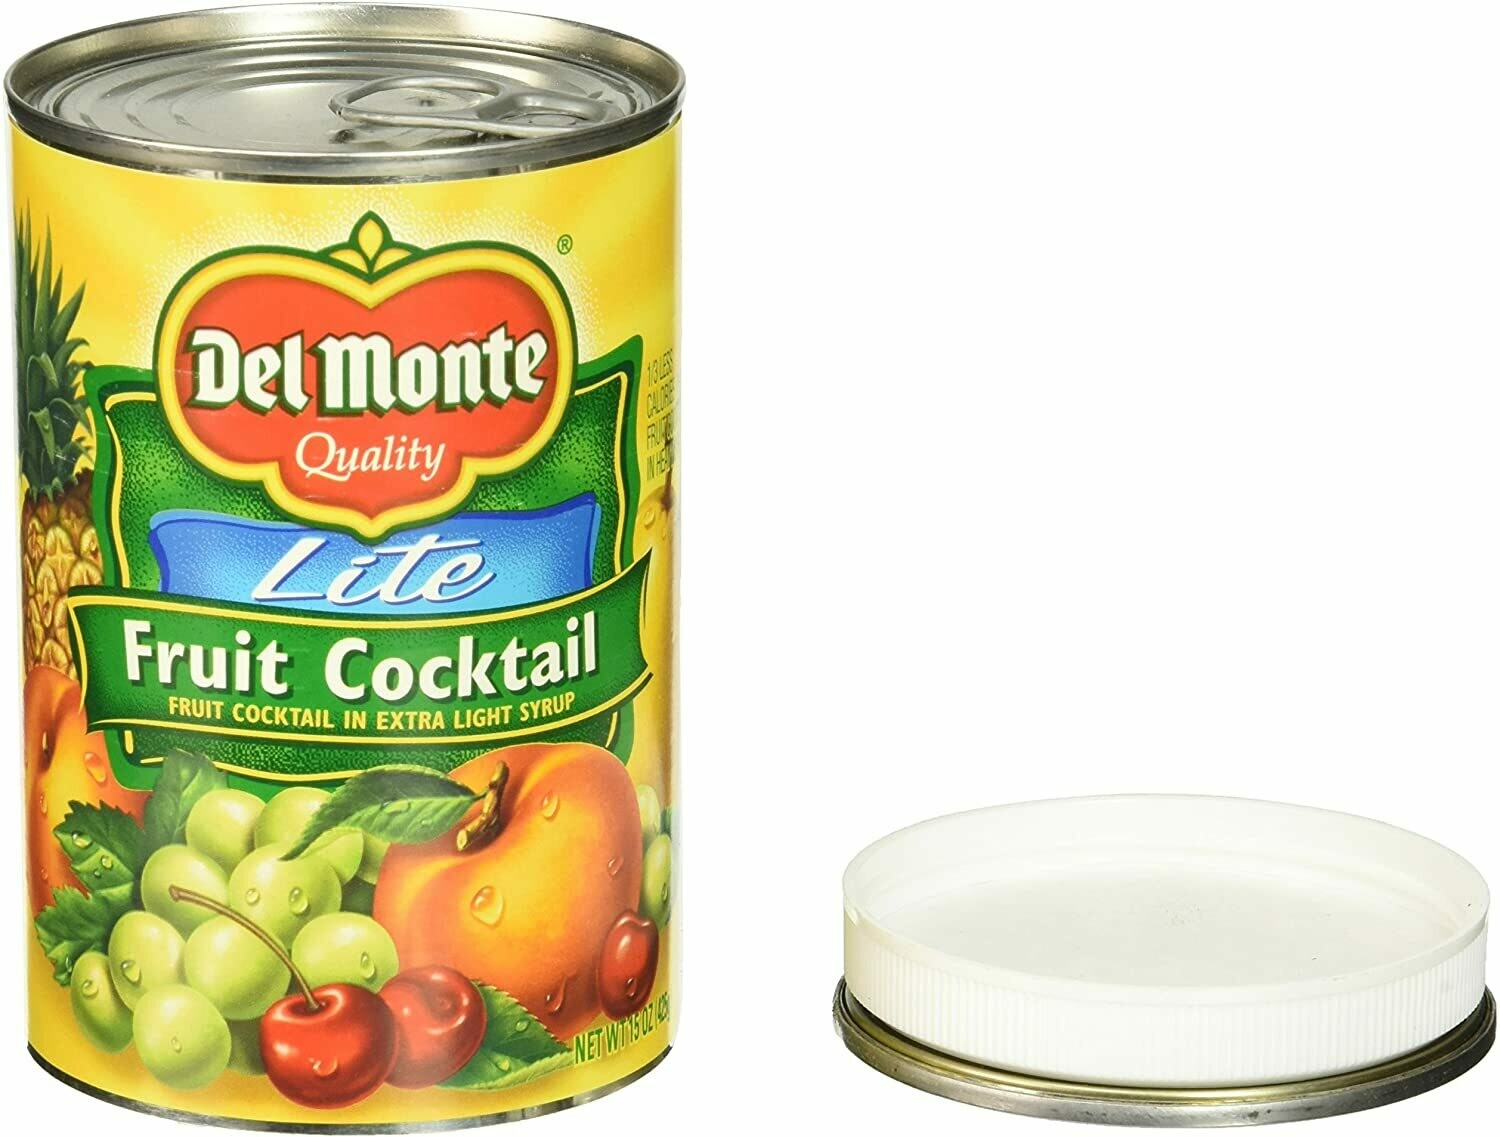 DEL MONTE FRUIT COCKTAIL SAFE CAN